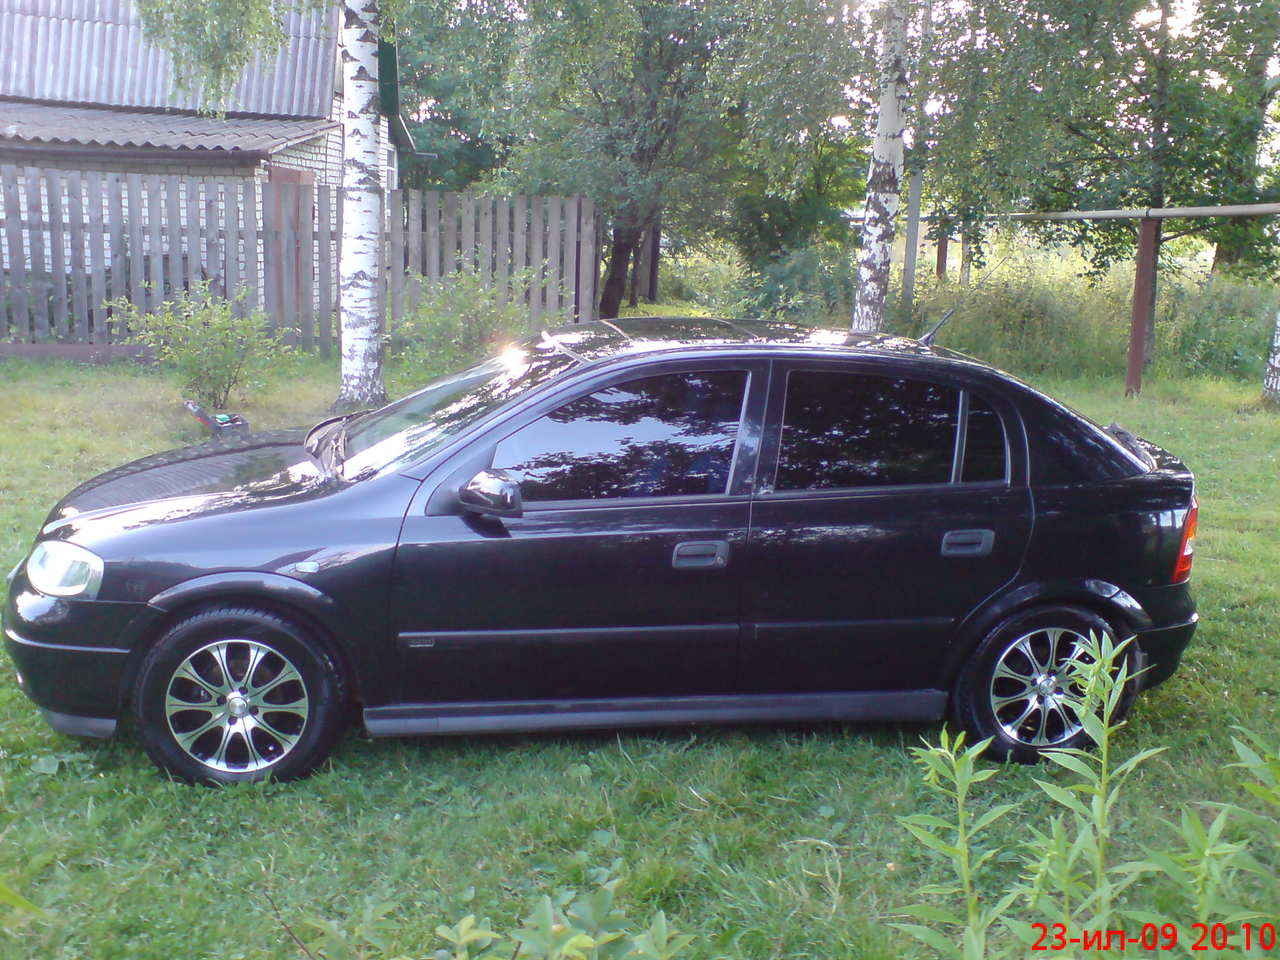 2003 opel astra photos 1 6 gasoline ff automatic for sale. Black Bedroom Furniture Sets. Home Design Ideas